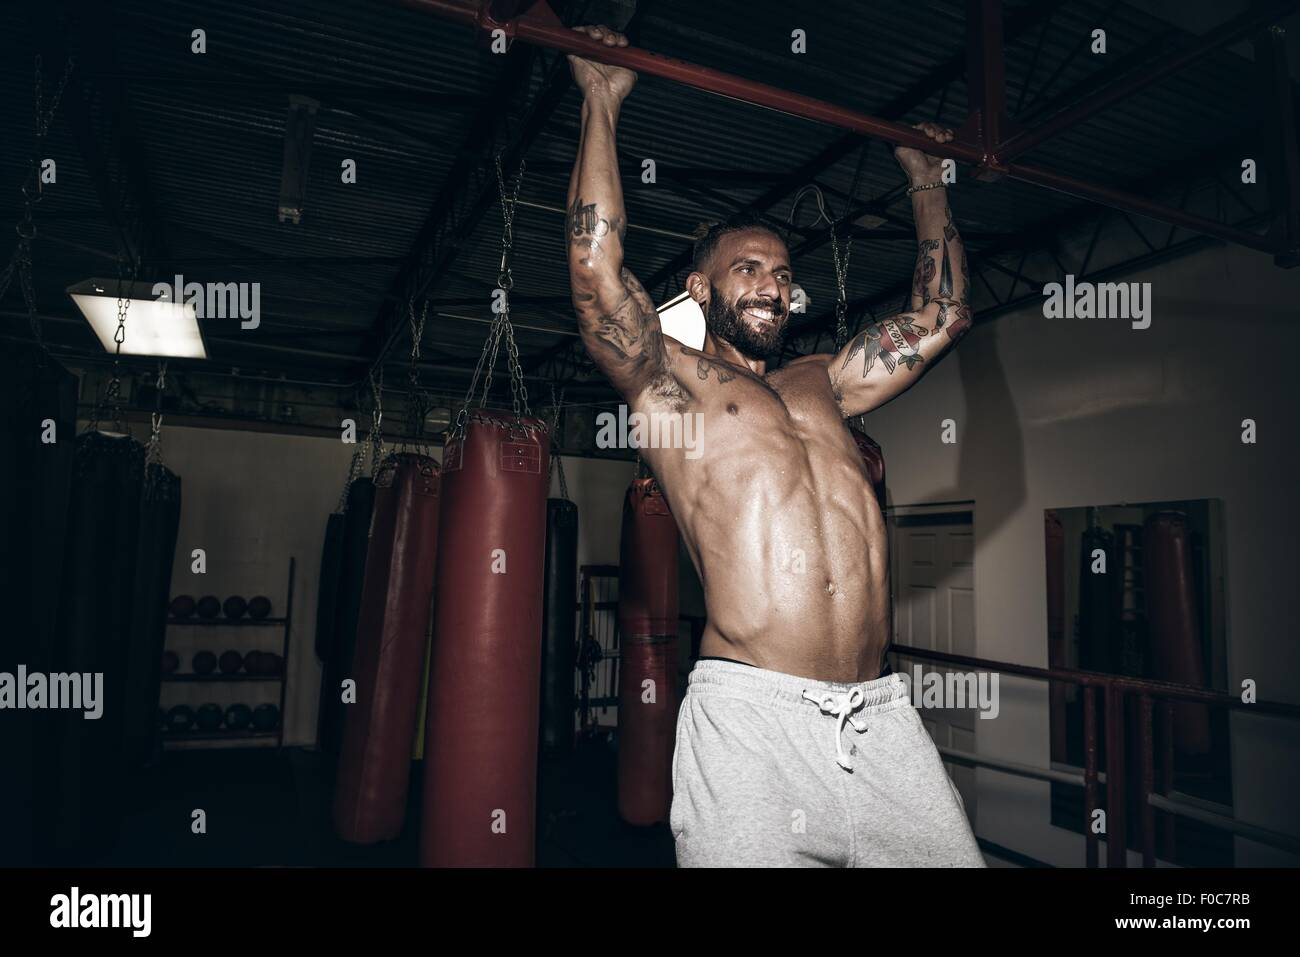 Male boxer doing pull ups with gritted teeth in gym - Stock Image